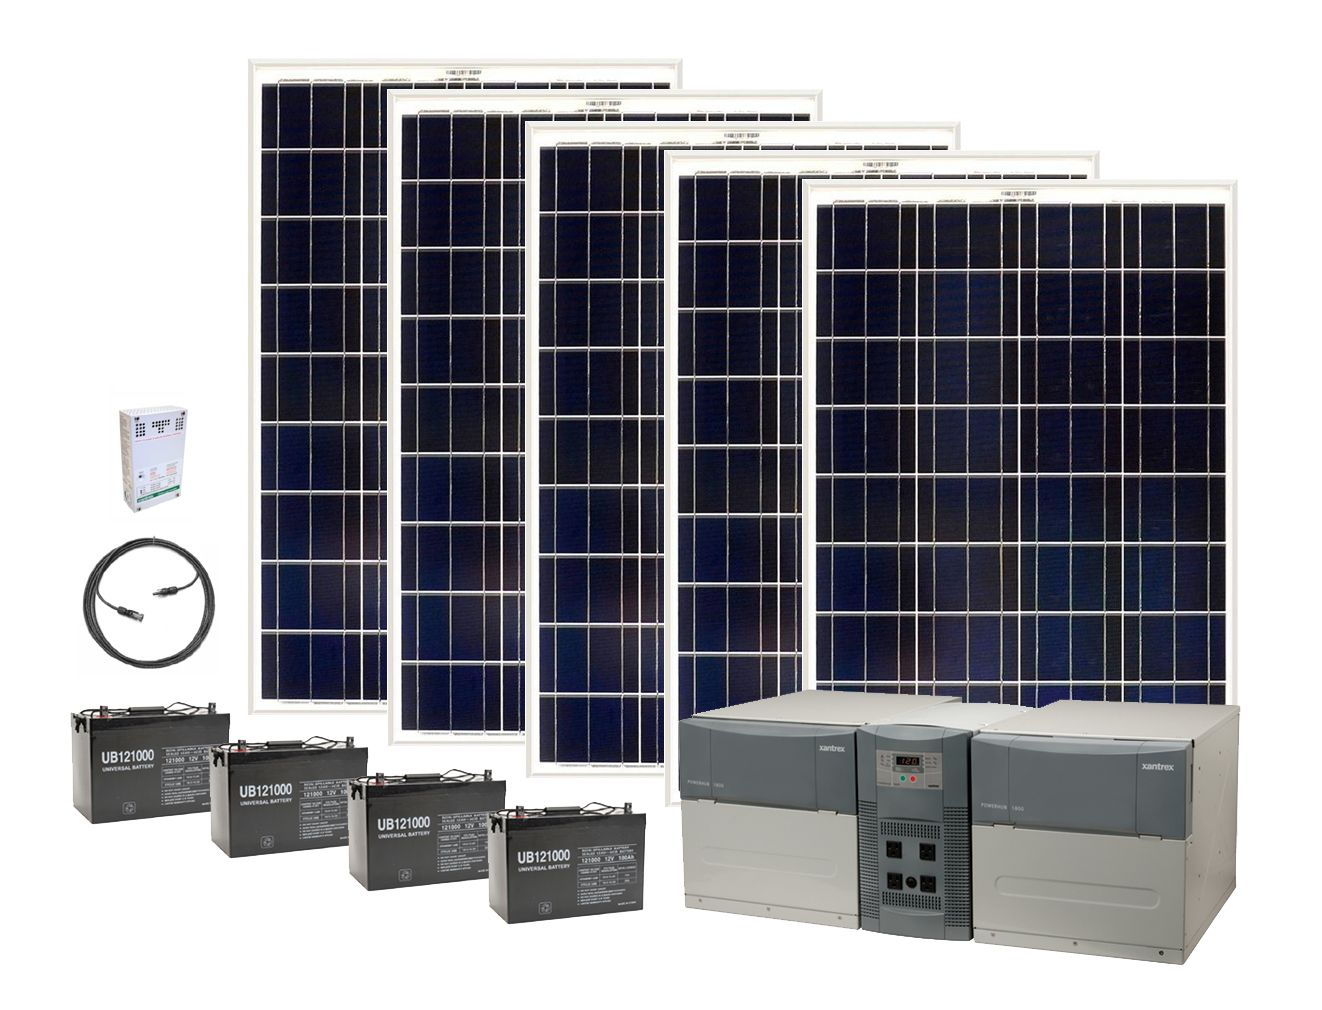 120 Volt Solar Power Generator Kits Solar Power House Solar Panels Solar Heating